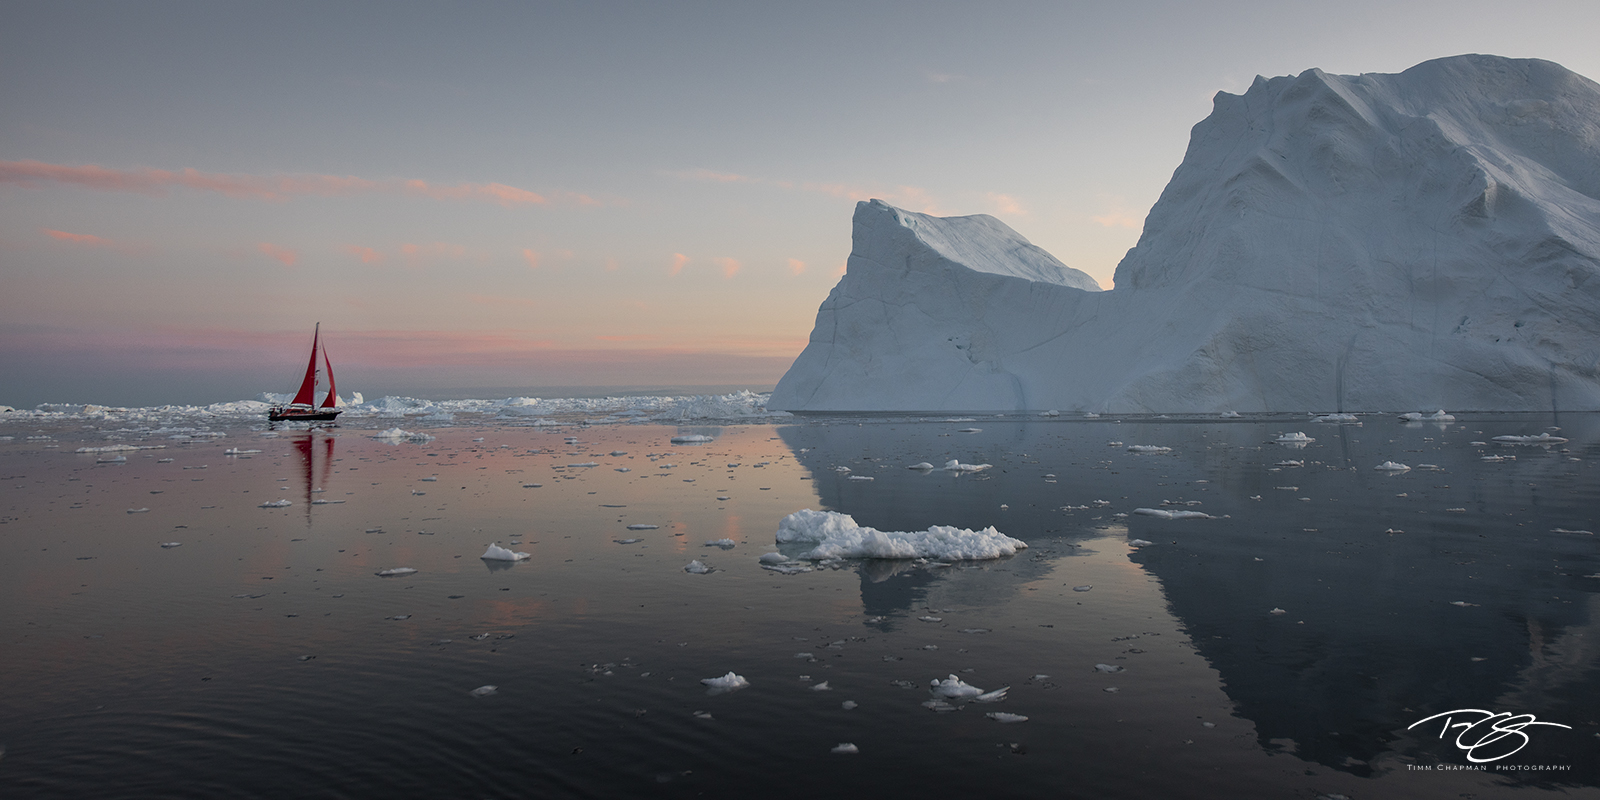 A sailboat navigates the mouth of awesome Kangia Icefjord in west Greenland